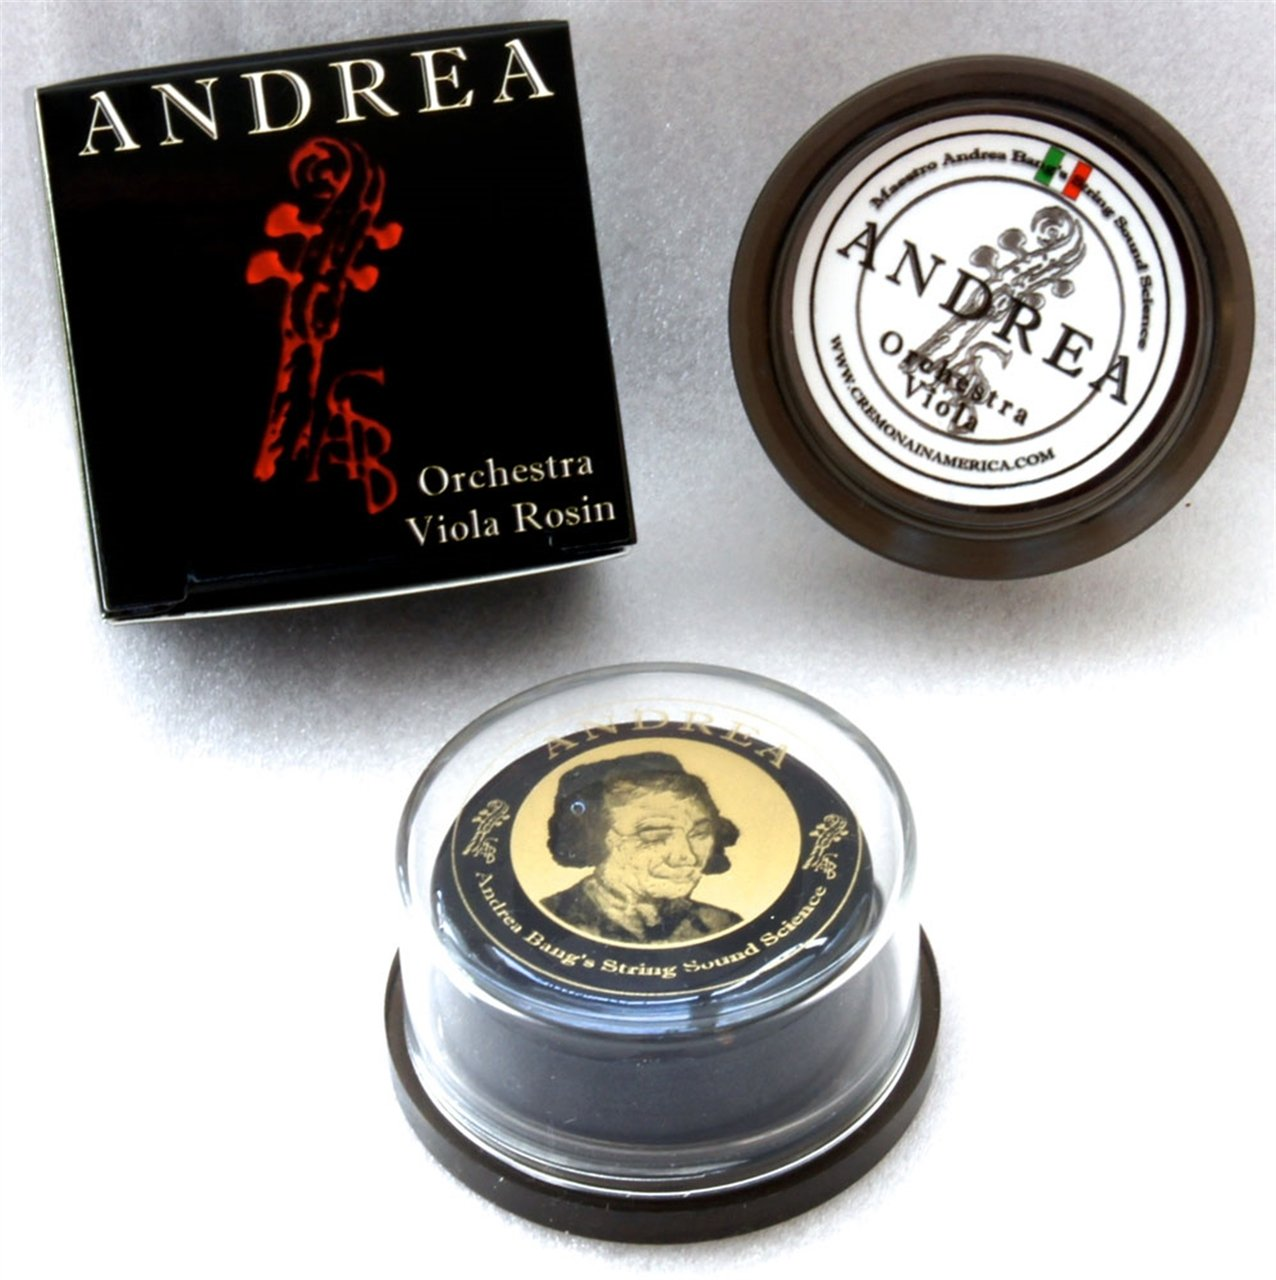 Andrea Vienna Rosin for Symphony Viola in action